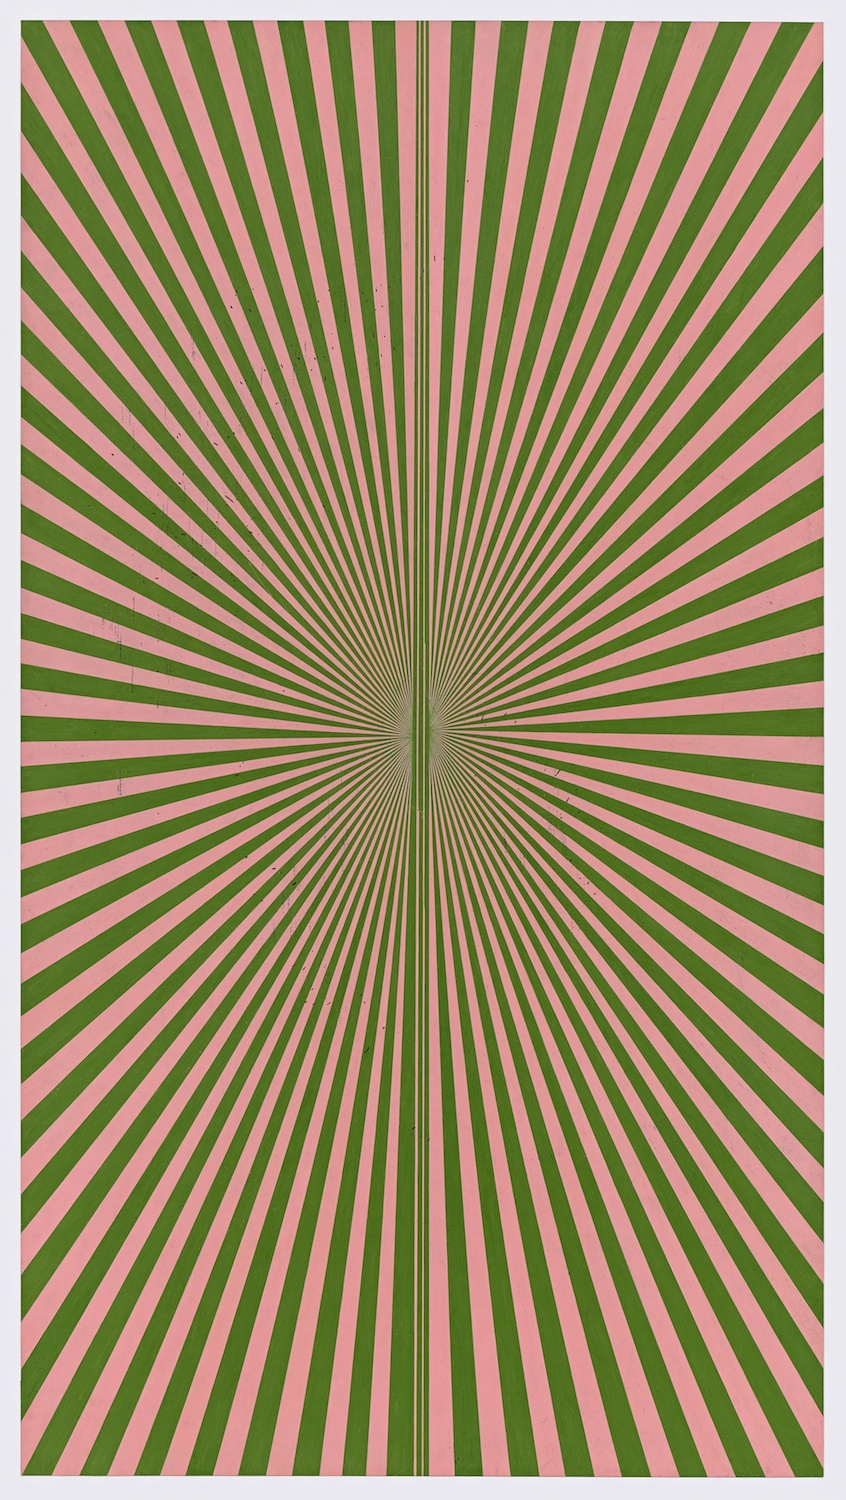 Mark Grotjahn 2013  Untitled (Blush Pink and Kelly Green Butterfly 45.13)  Color pencil on paper 76h x 42w in MG45.13